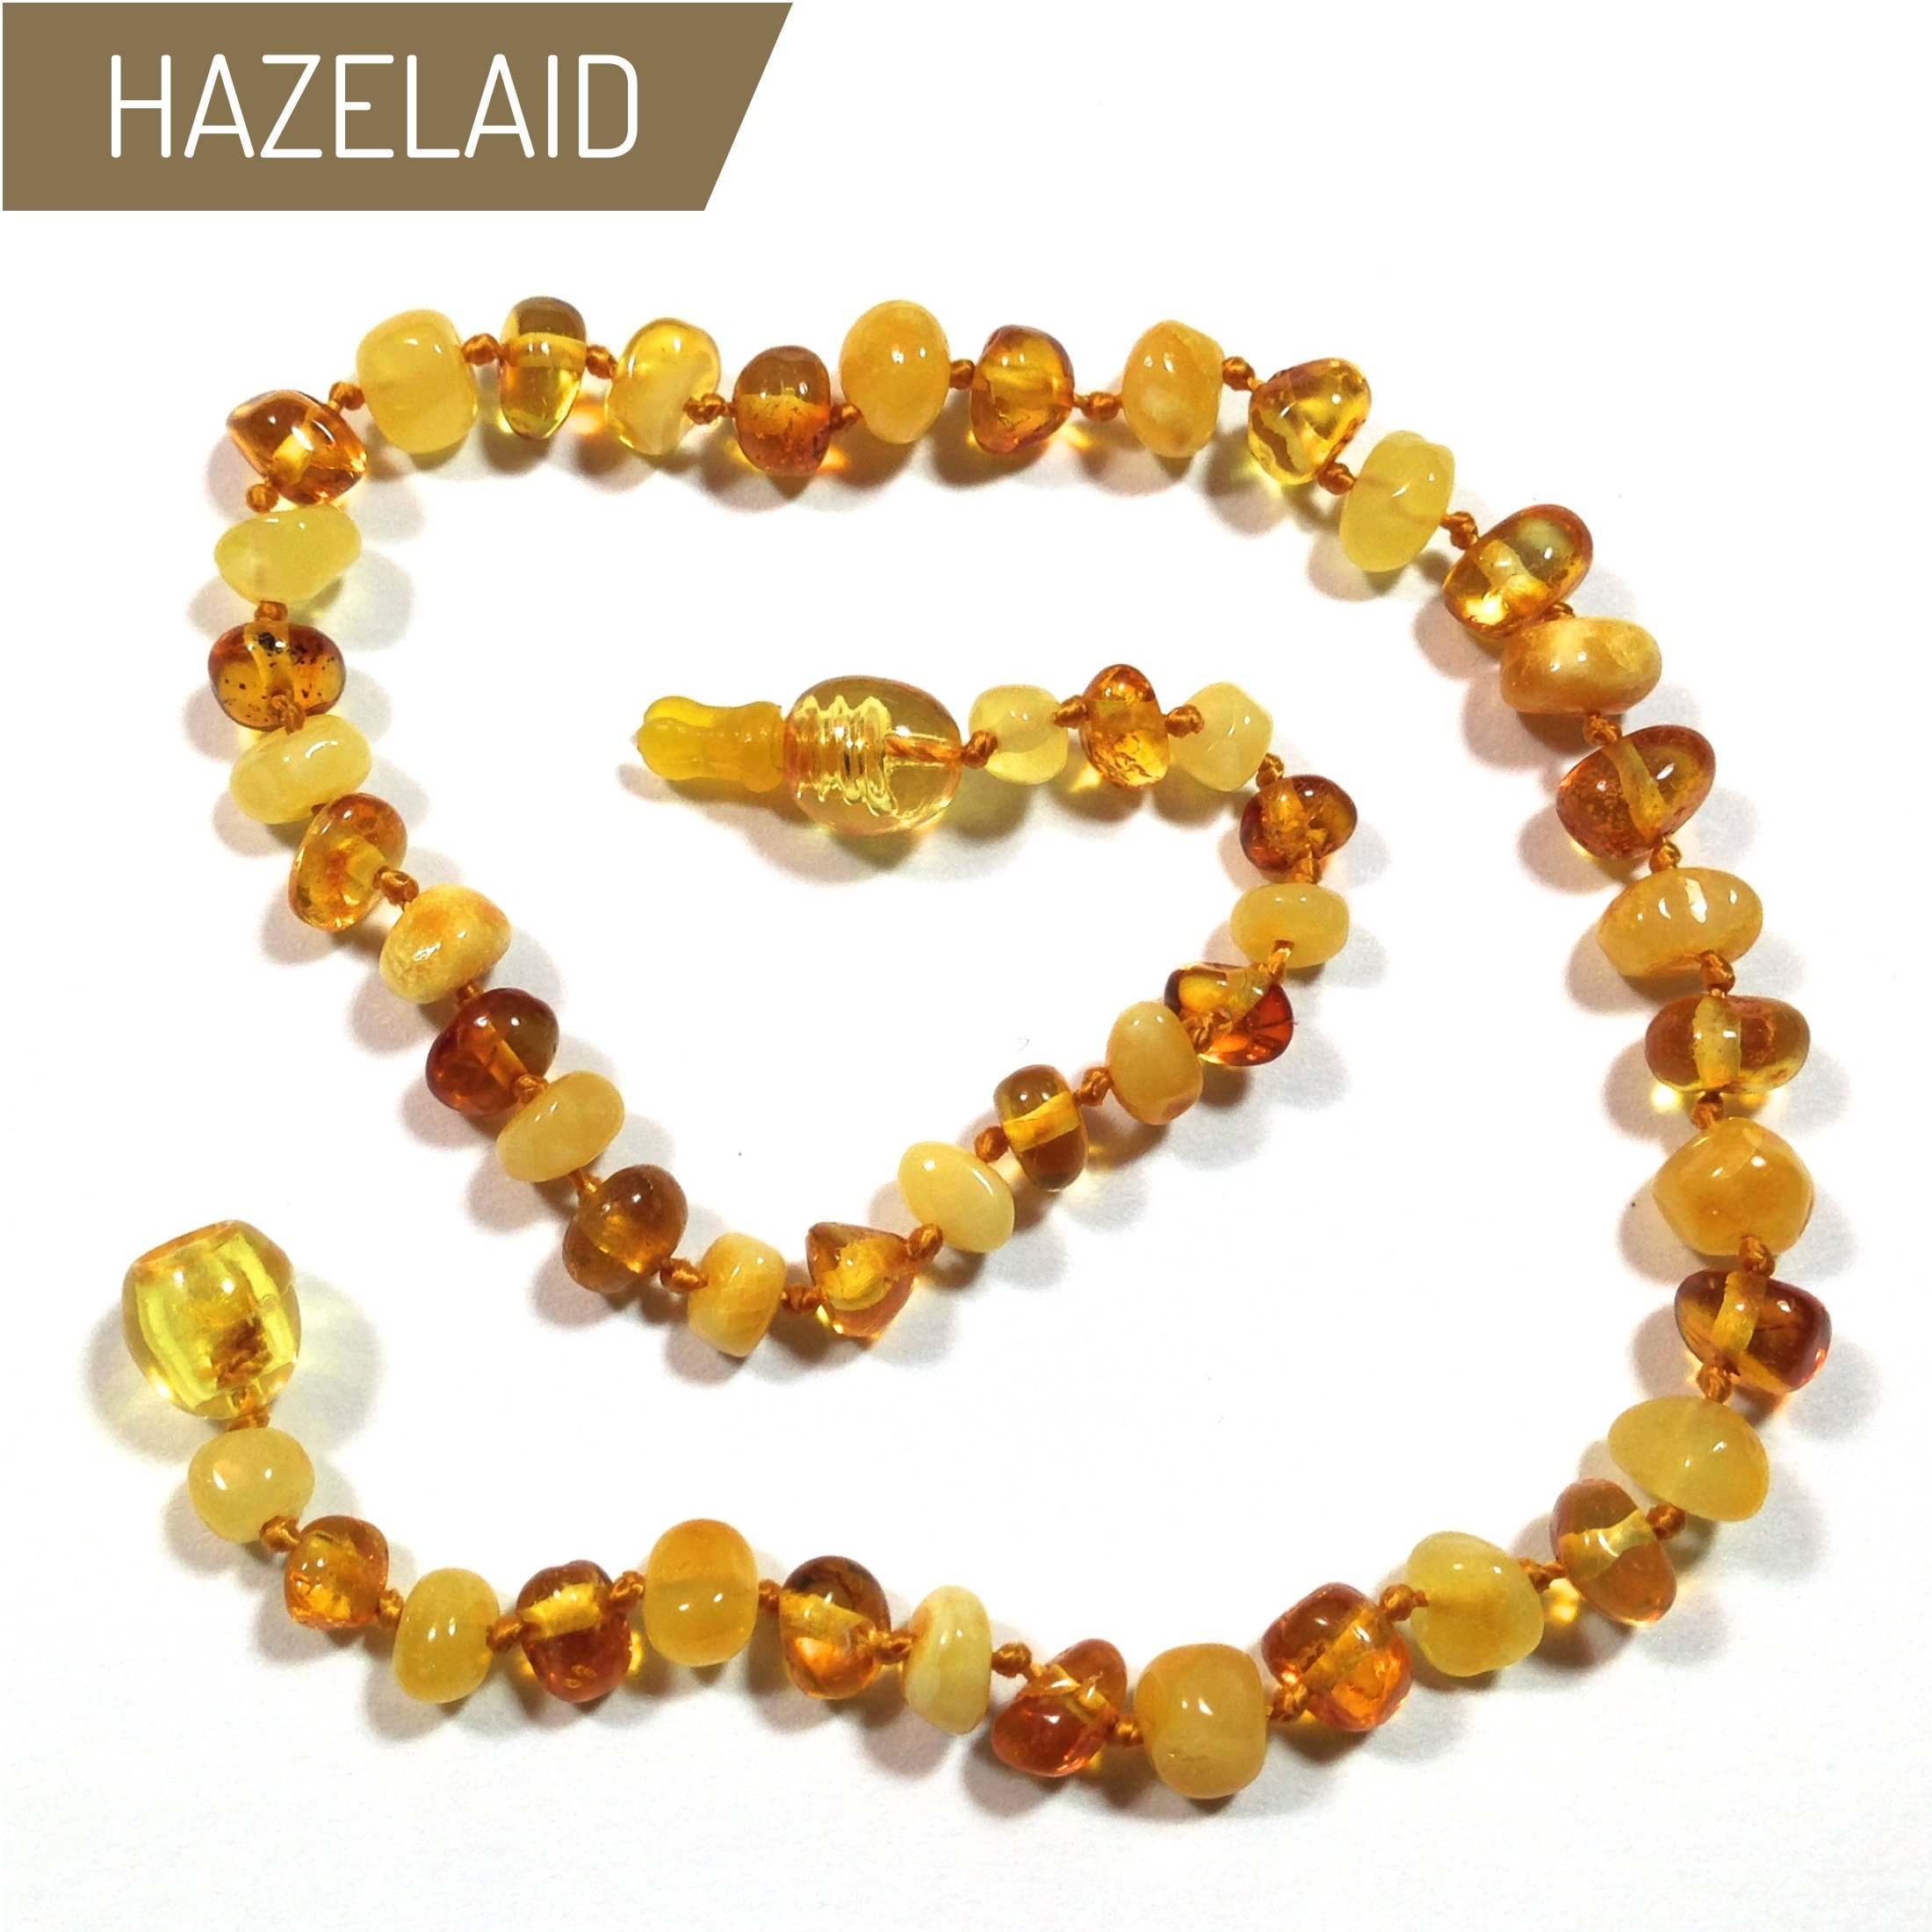 Hazelaid (TM) 12'' Pop-Clasp Baltic Amber Milk & Honey Necklace